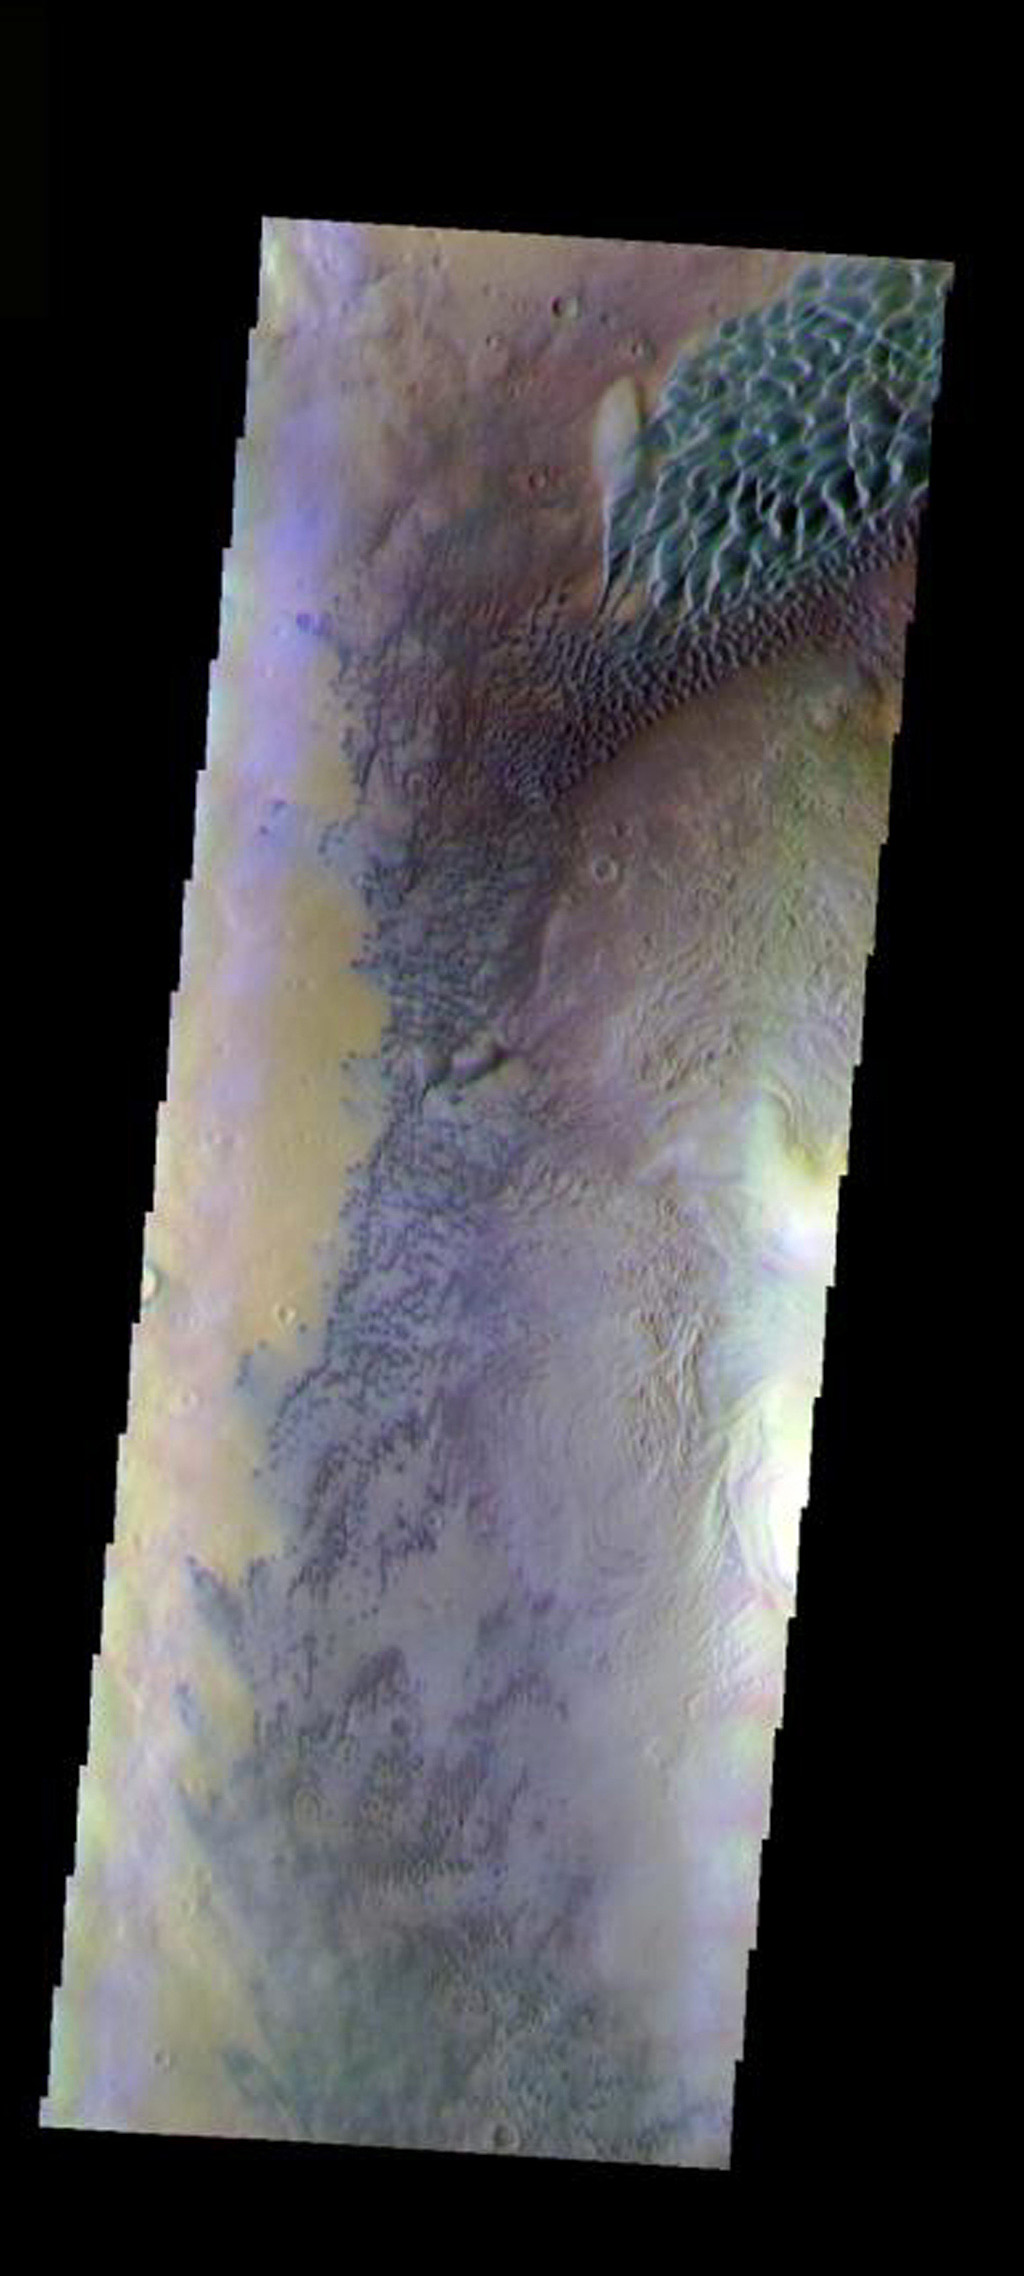 This false-color image from NASA's Mars Odyssey spacecraft shows part of the interior of Moreux Crater on Mars. The crater peak is at the right edge of the image. Many dunes and a dunefield are also evident.